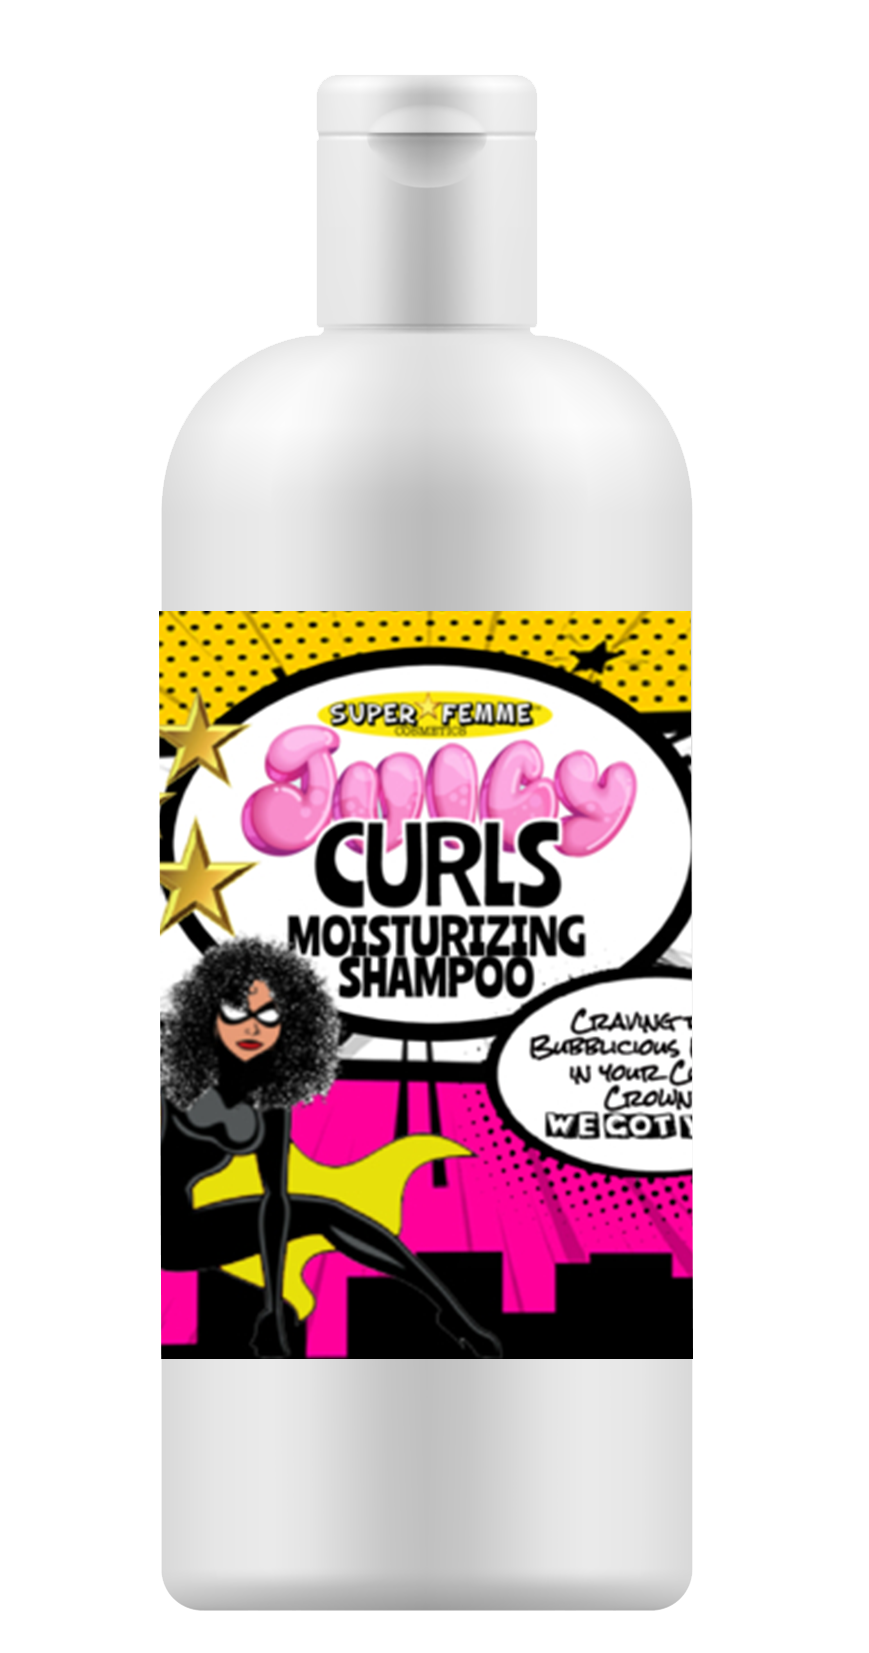 Juicy Curls Shampoo